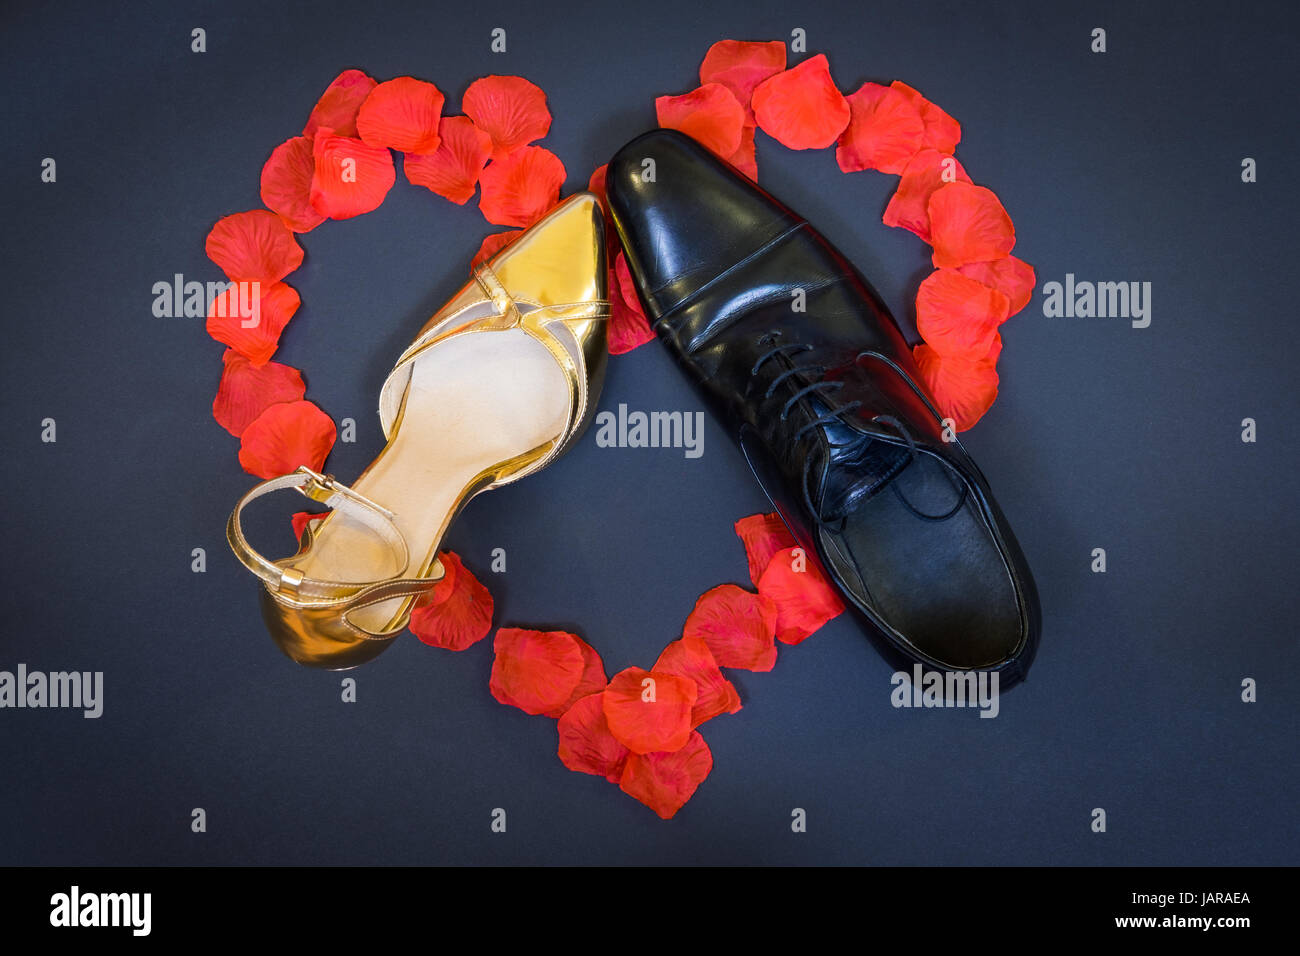 Black and Gold shoes - Stock Image